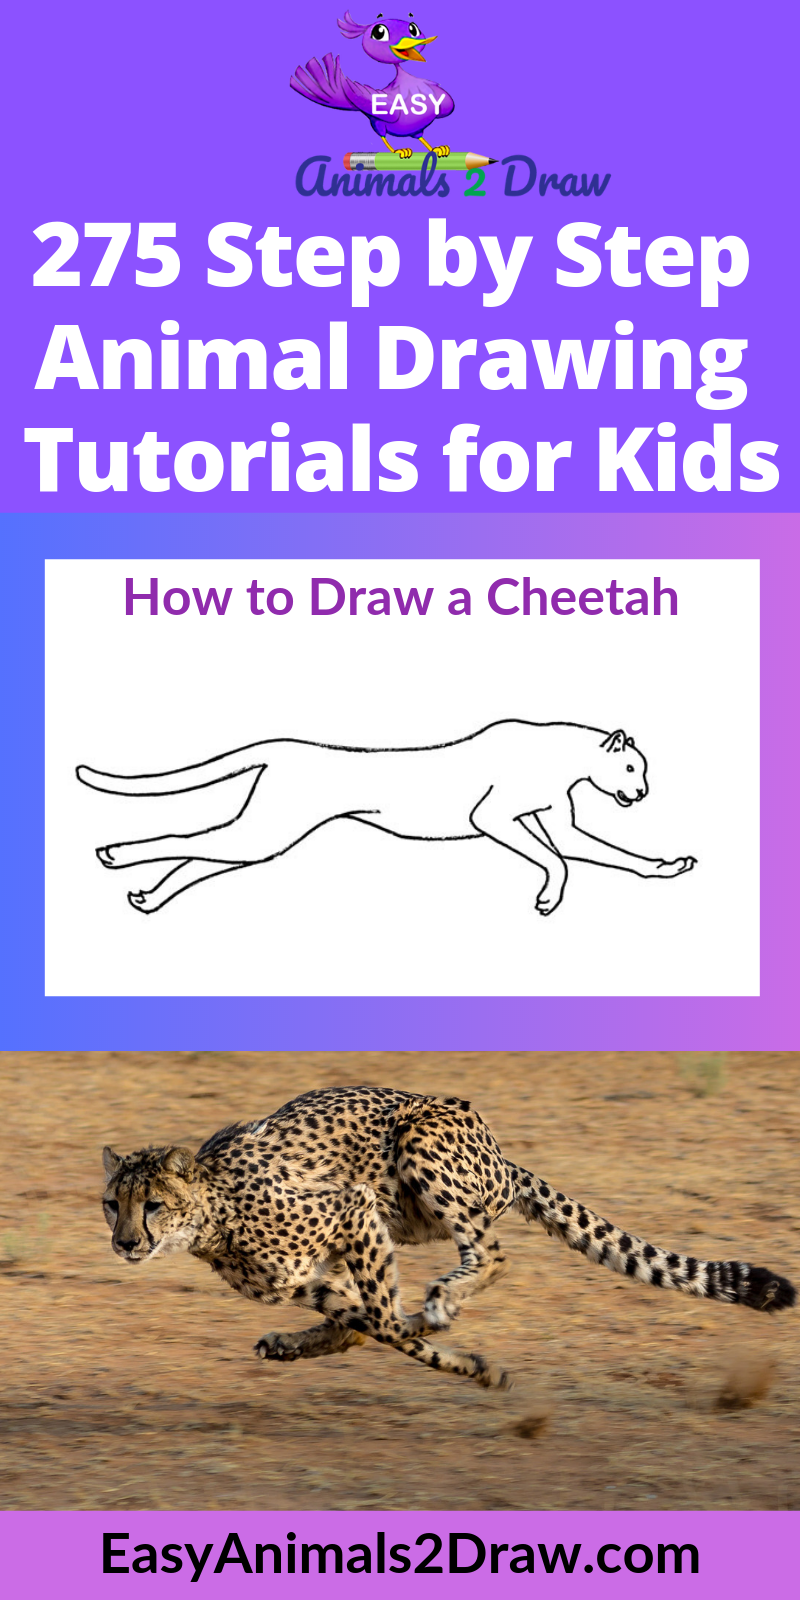 Learn How To Draw An Amazing Running Cheetah With This Easy And Inspirational Step By Step Drawing Tuto Cheetah Drawing Easy Animals Drawing Tutorials For Kids